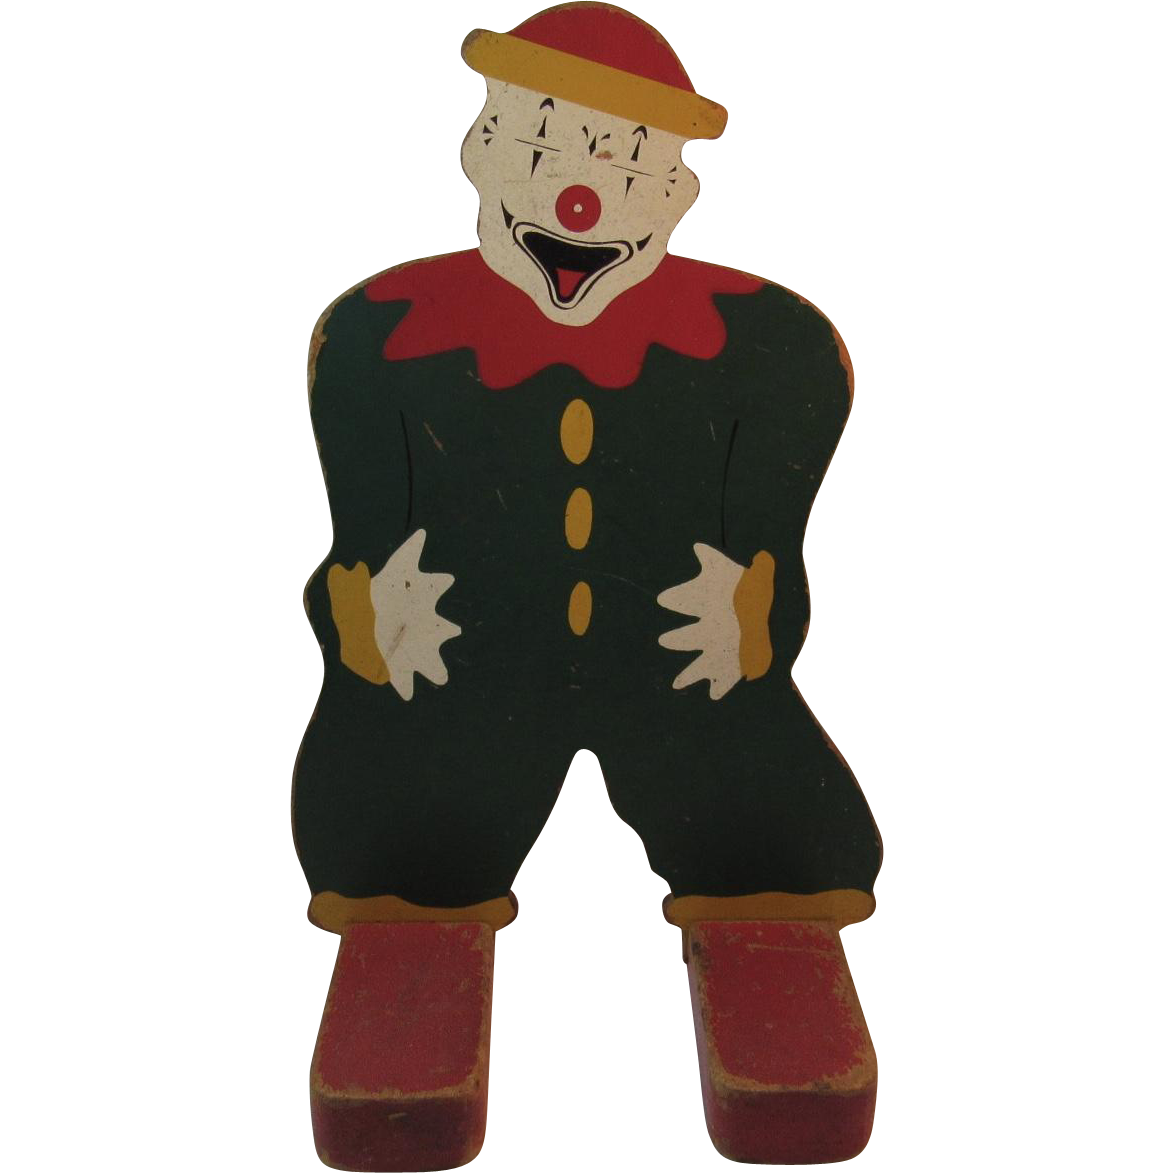 transparent download Knock down clown wood. Arcade clipart fall carnival.